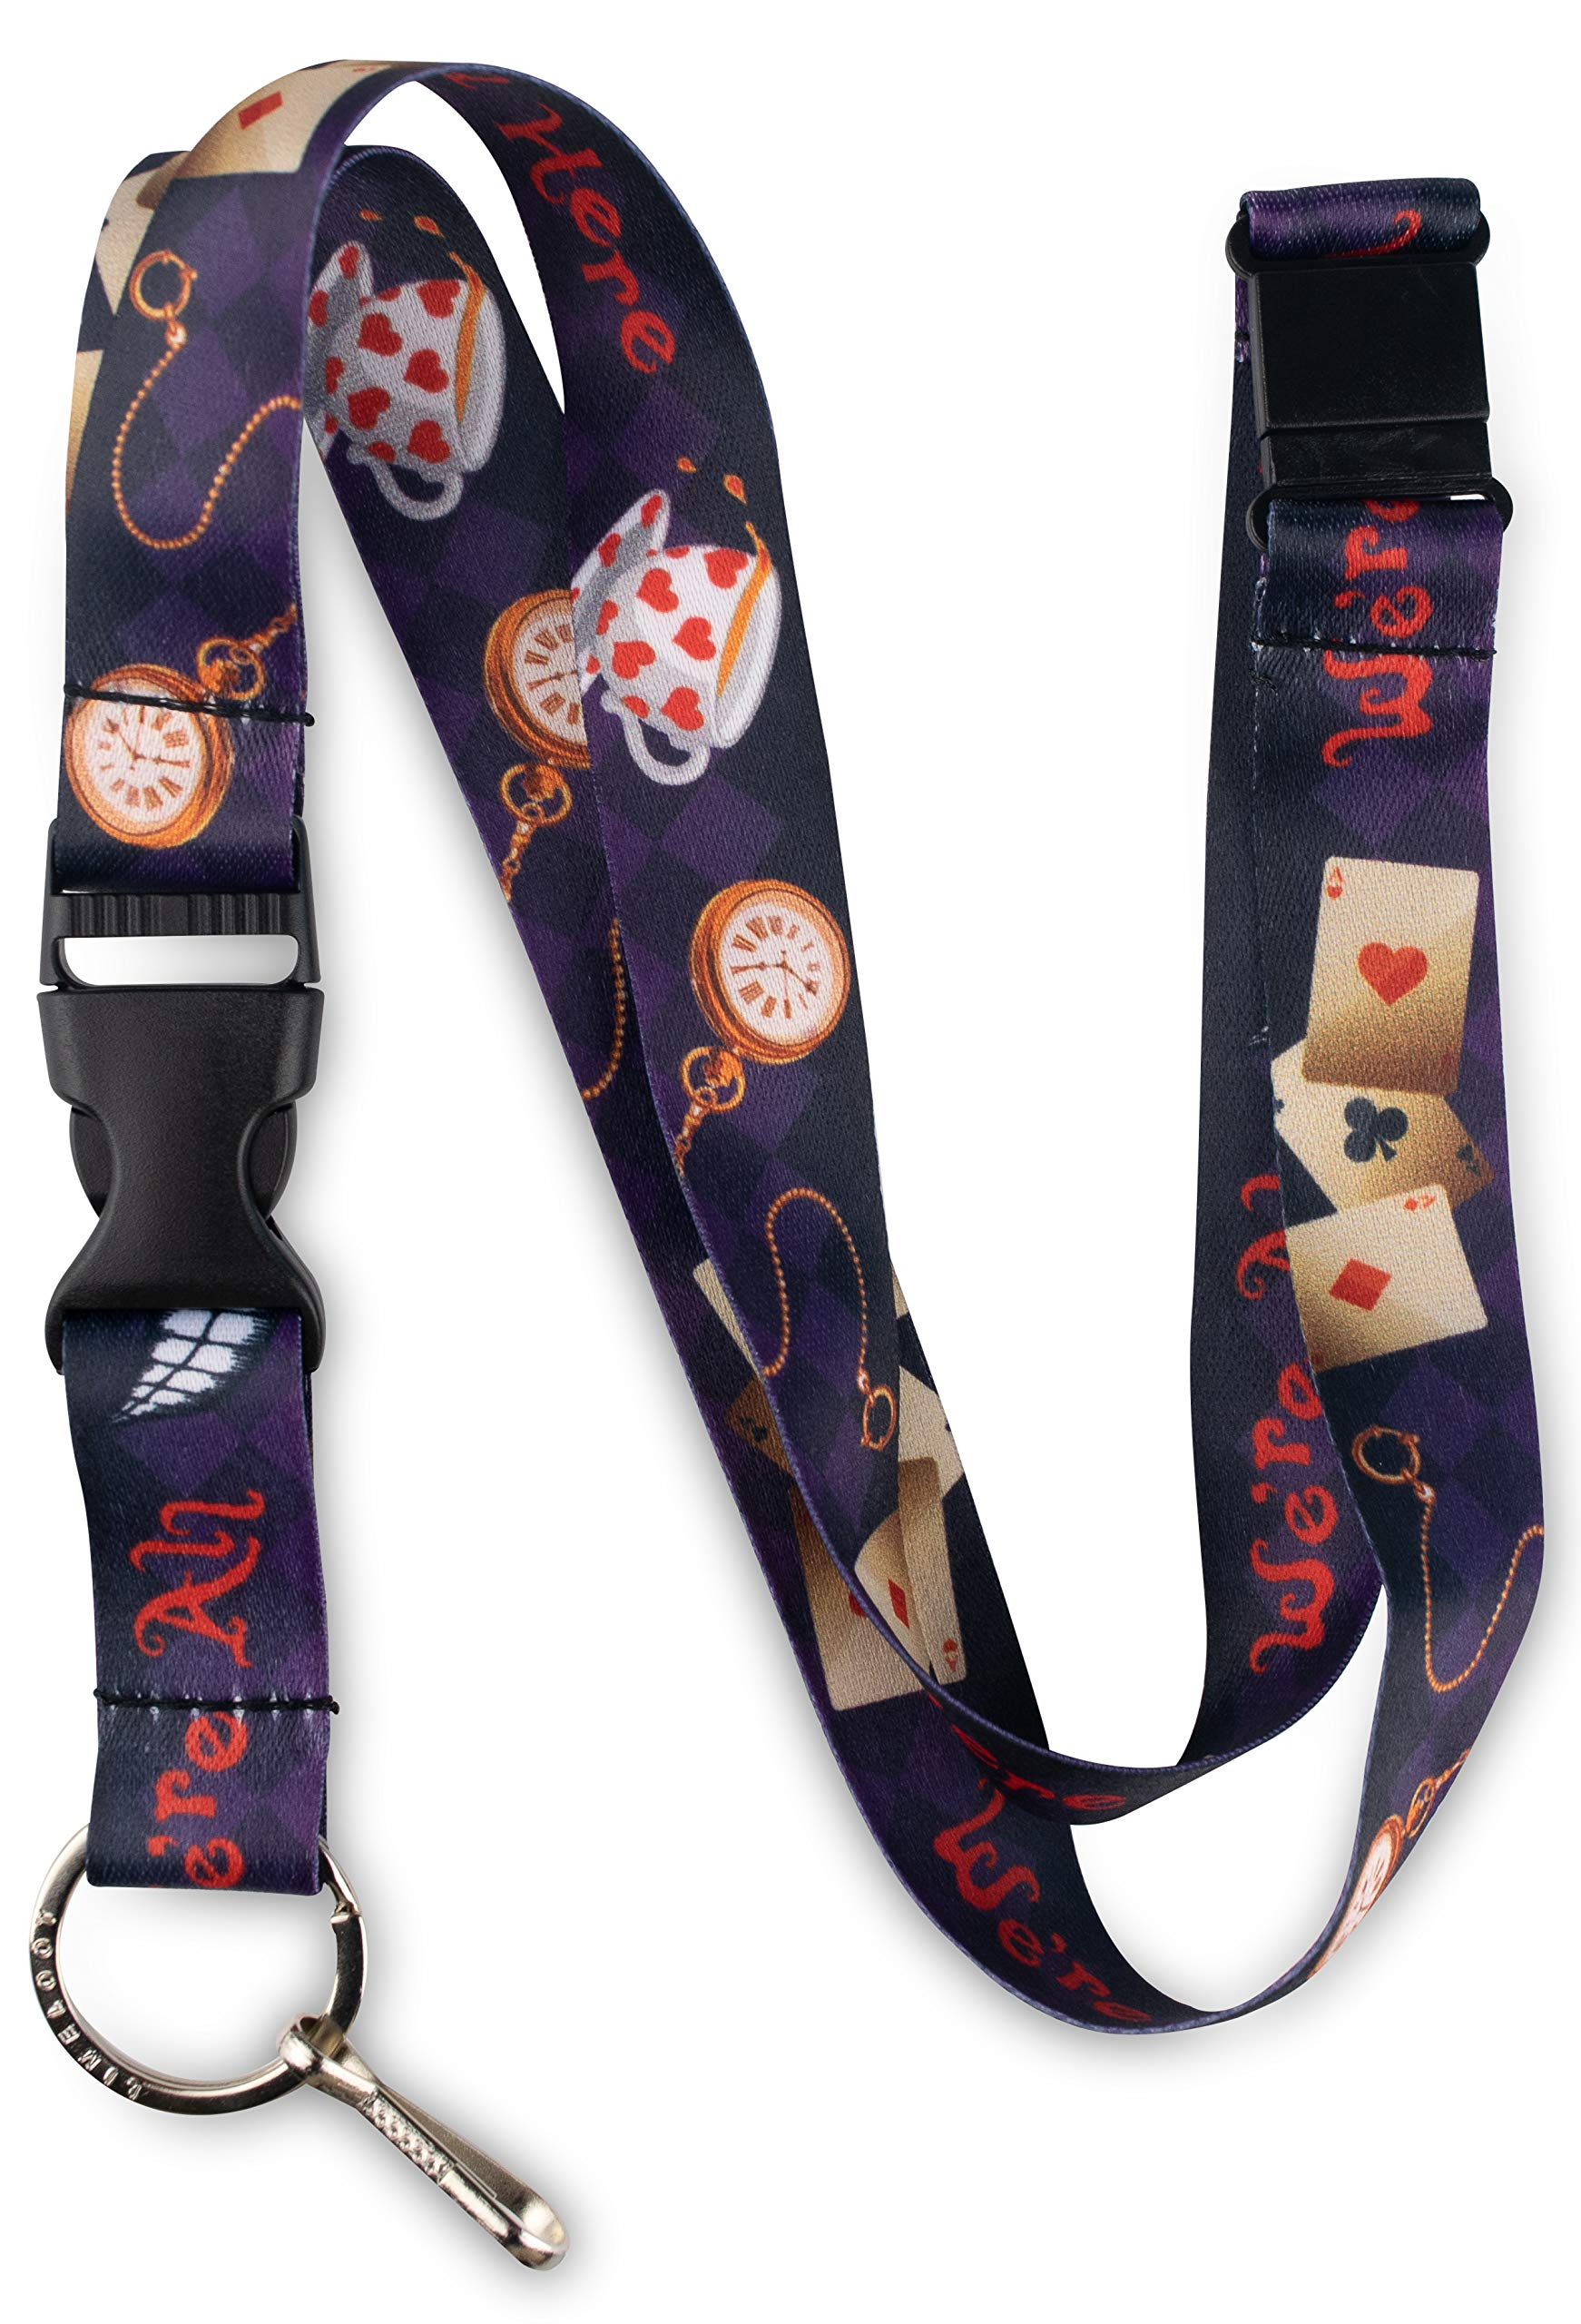 Limeloot Alice in Wonderland We are All Mad Here Premium Lanyard with Breakaway, Release Buckle, and Flat Ring